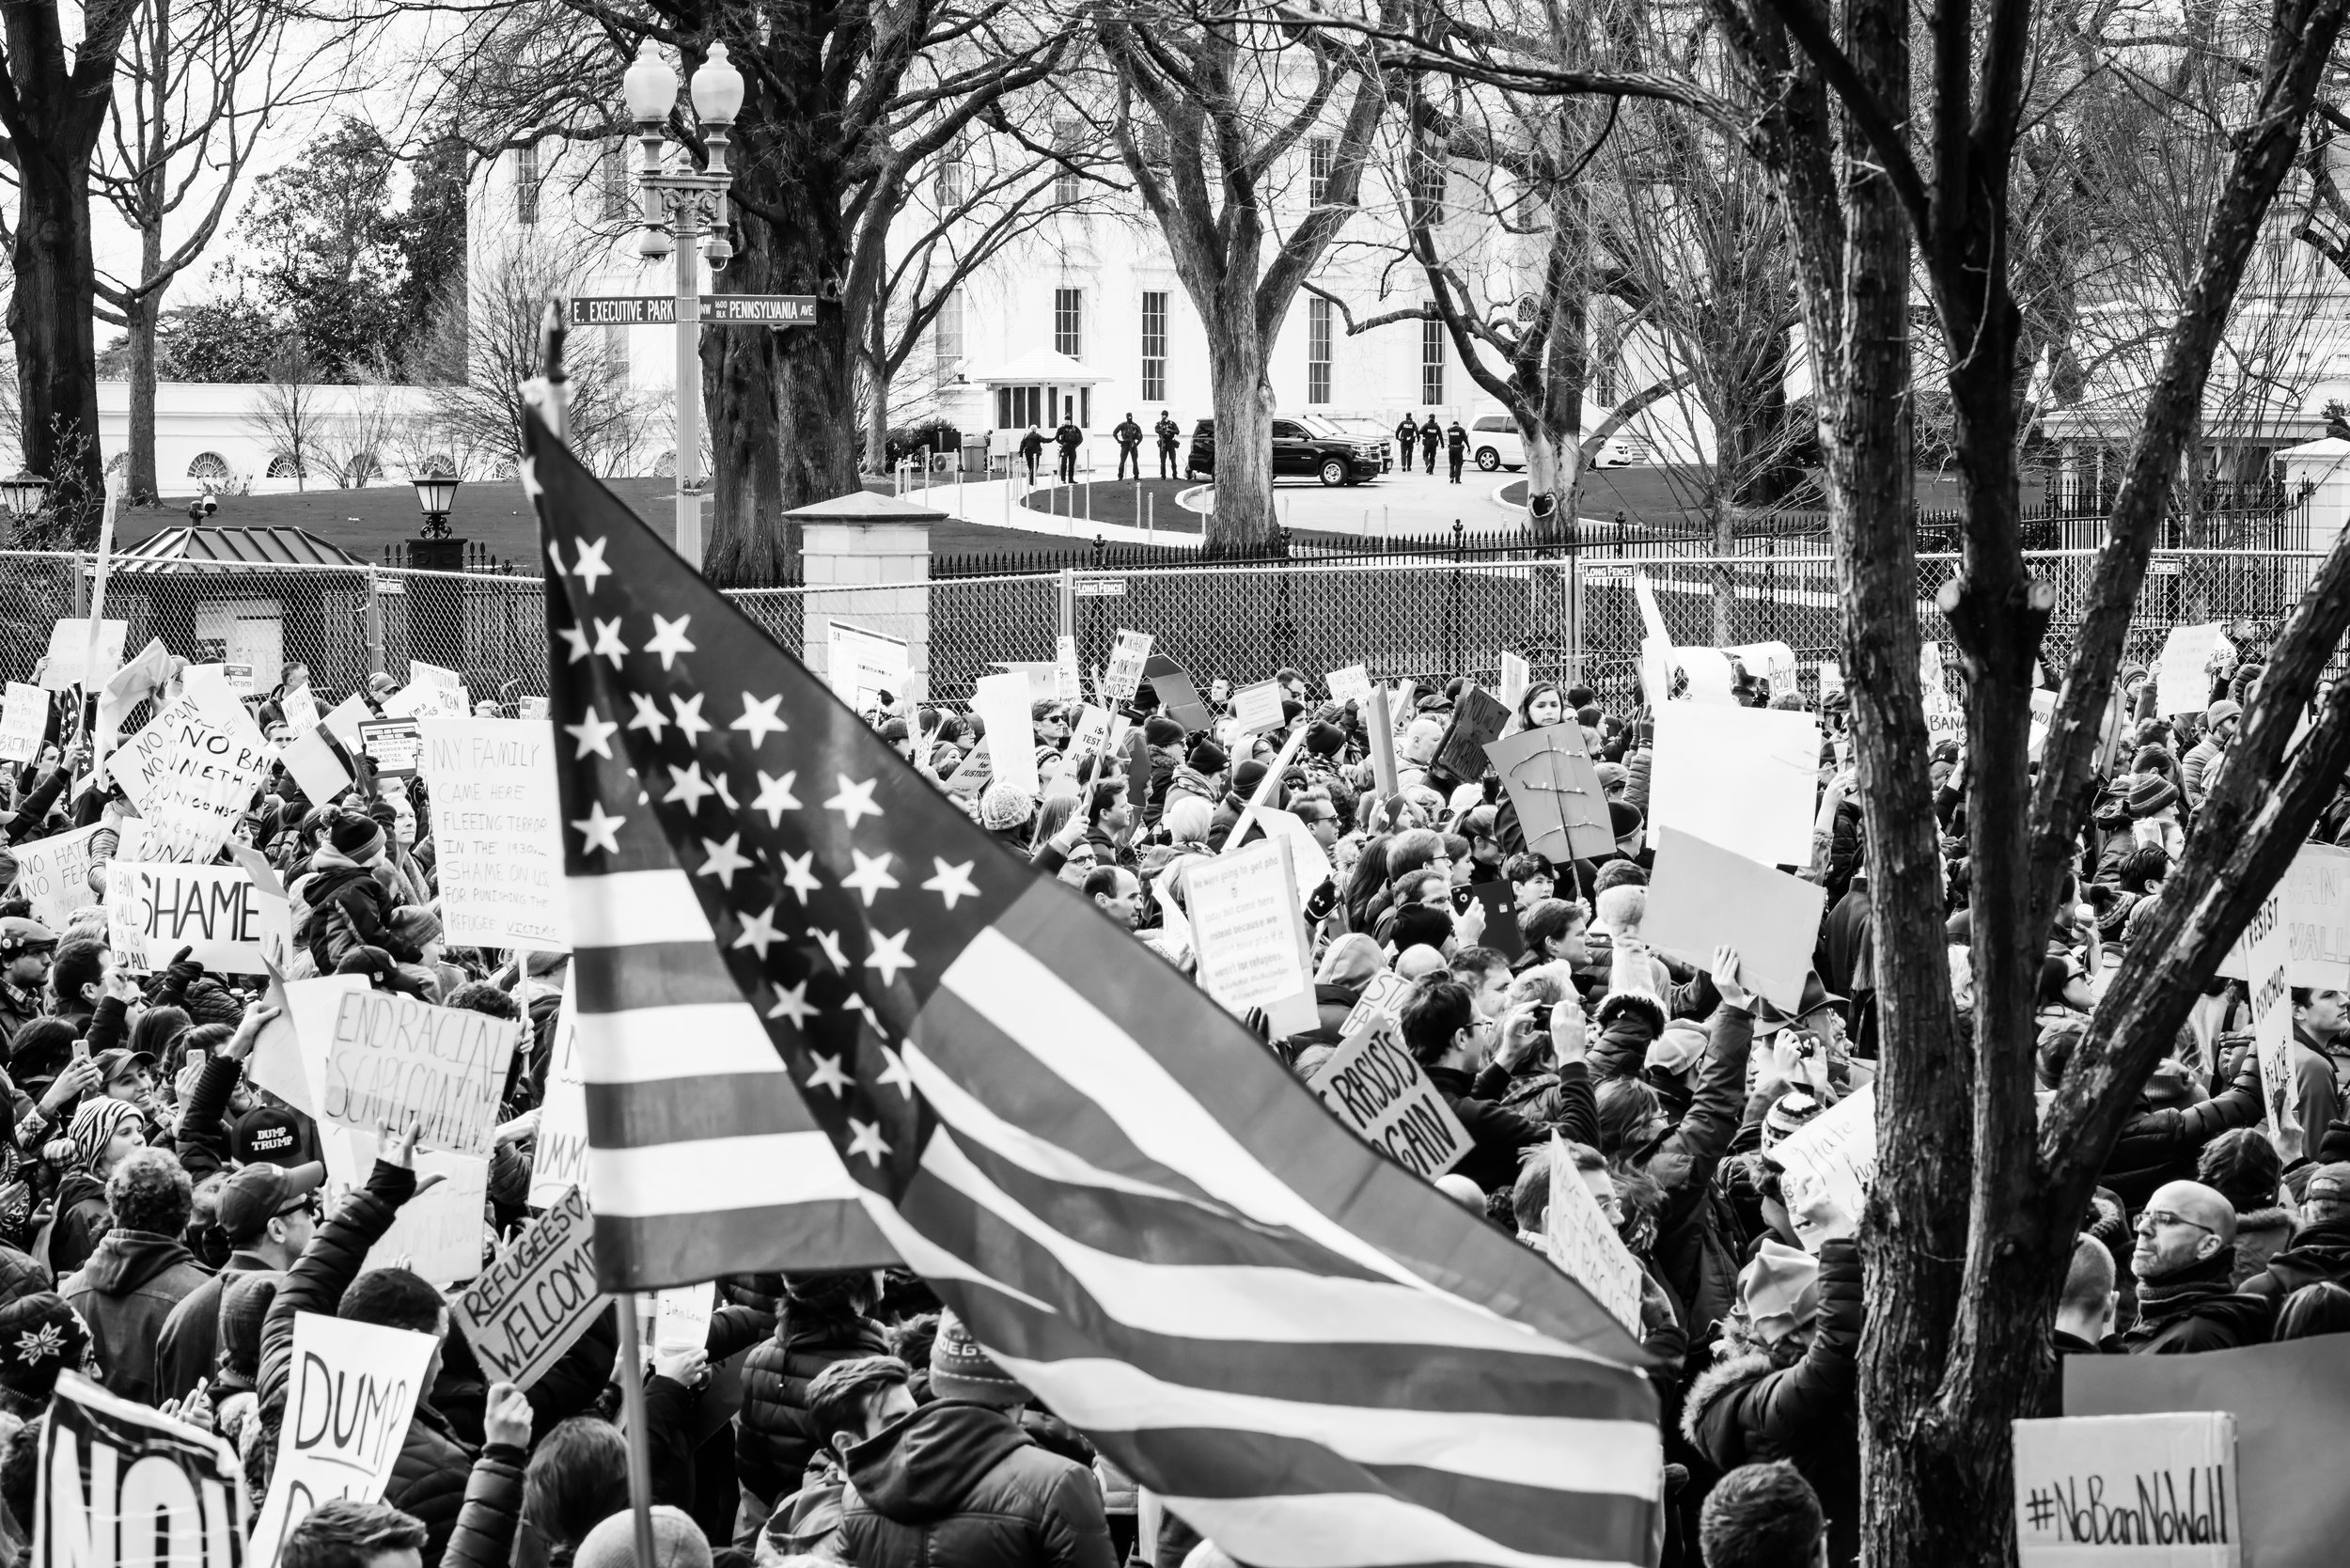 Protesters outside The White House stand up against Trump's Executive Order. Photo Courtesy of  Geoff Livingston  of the Flickr Creative Commons.